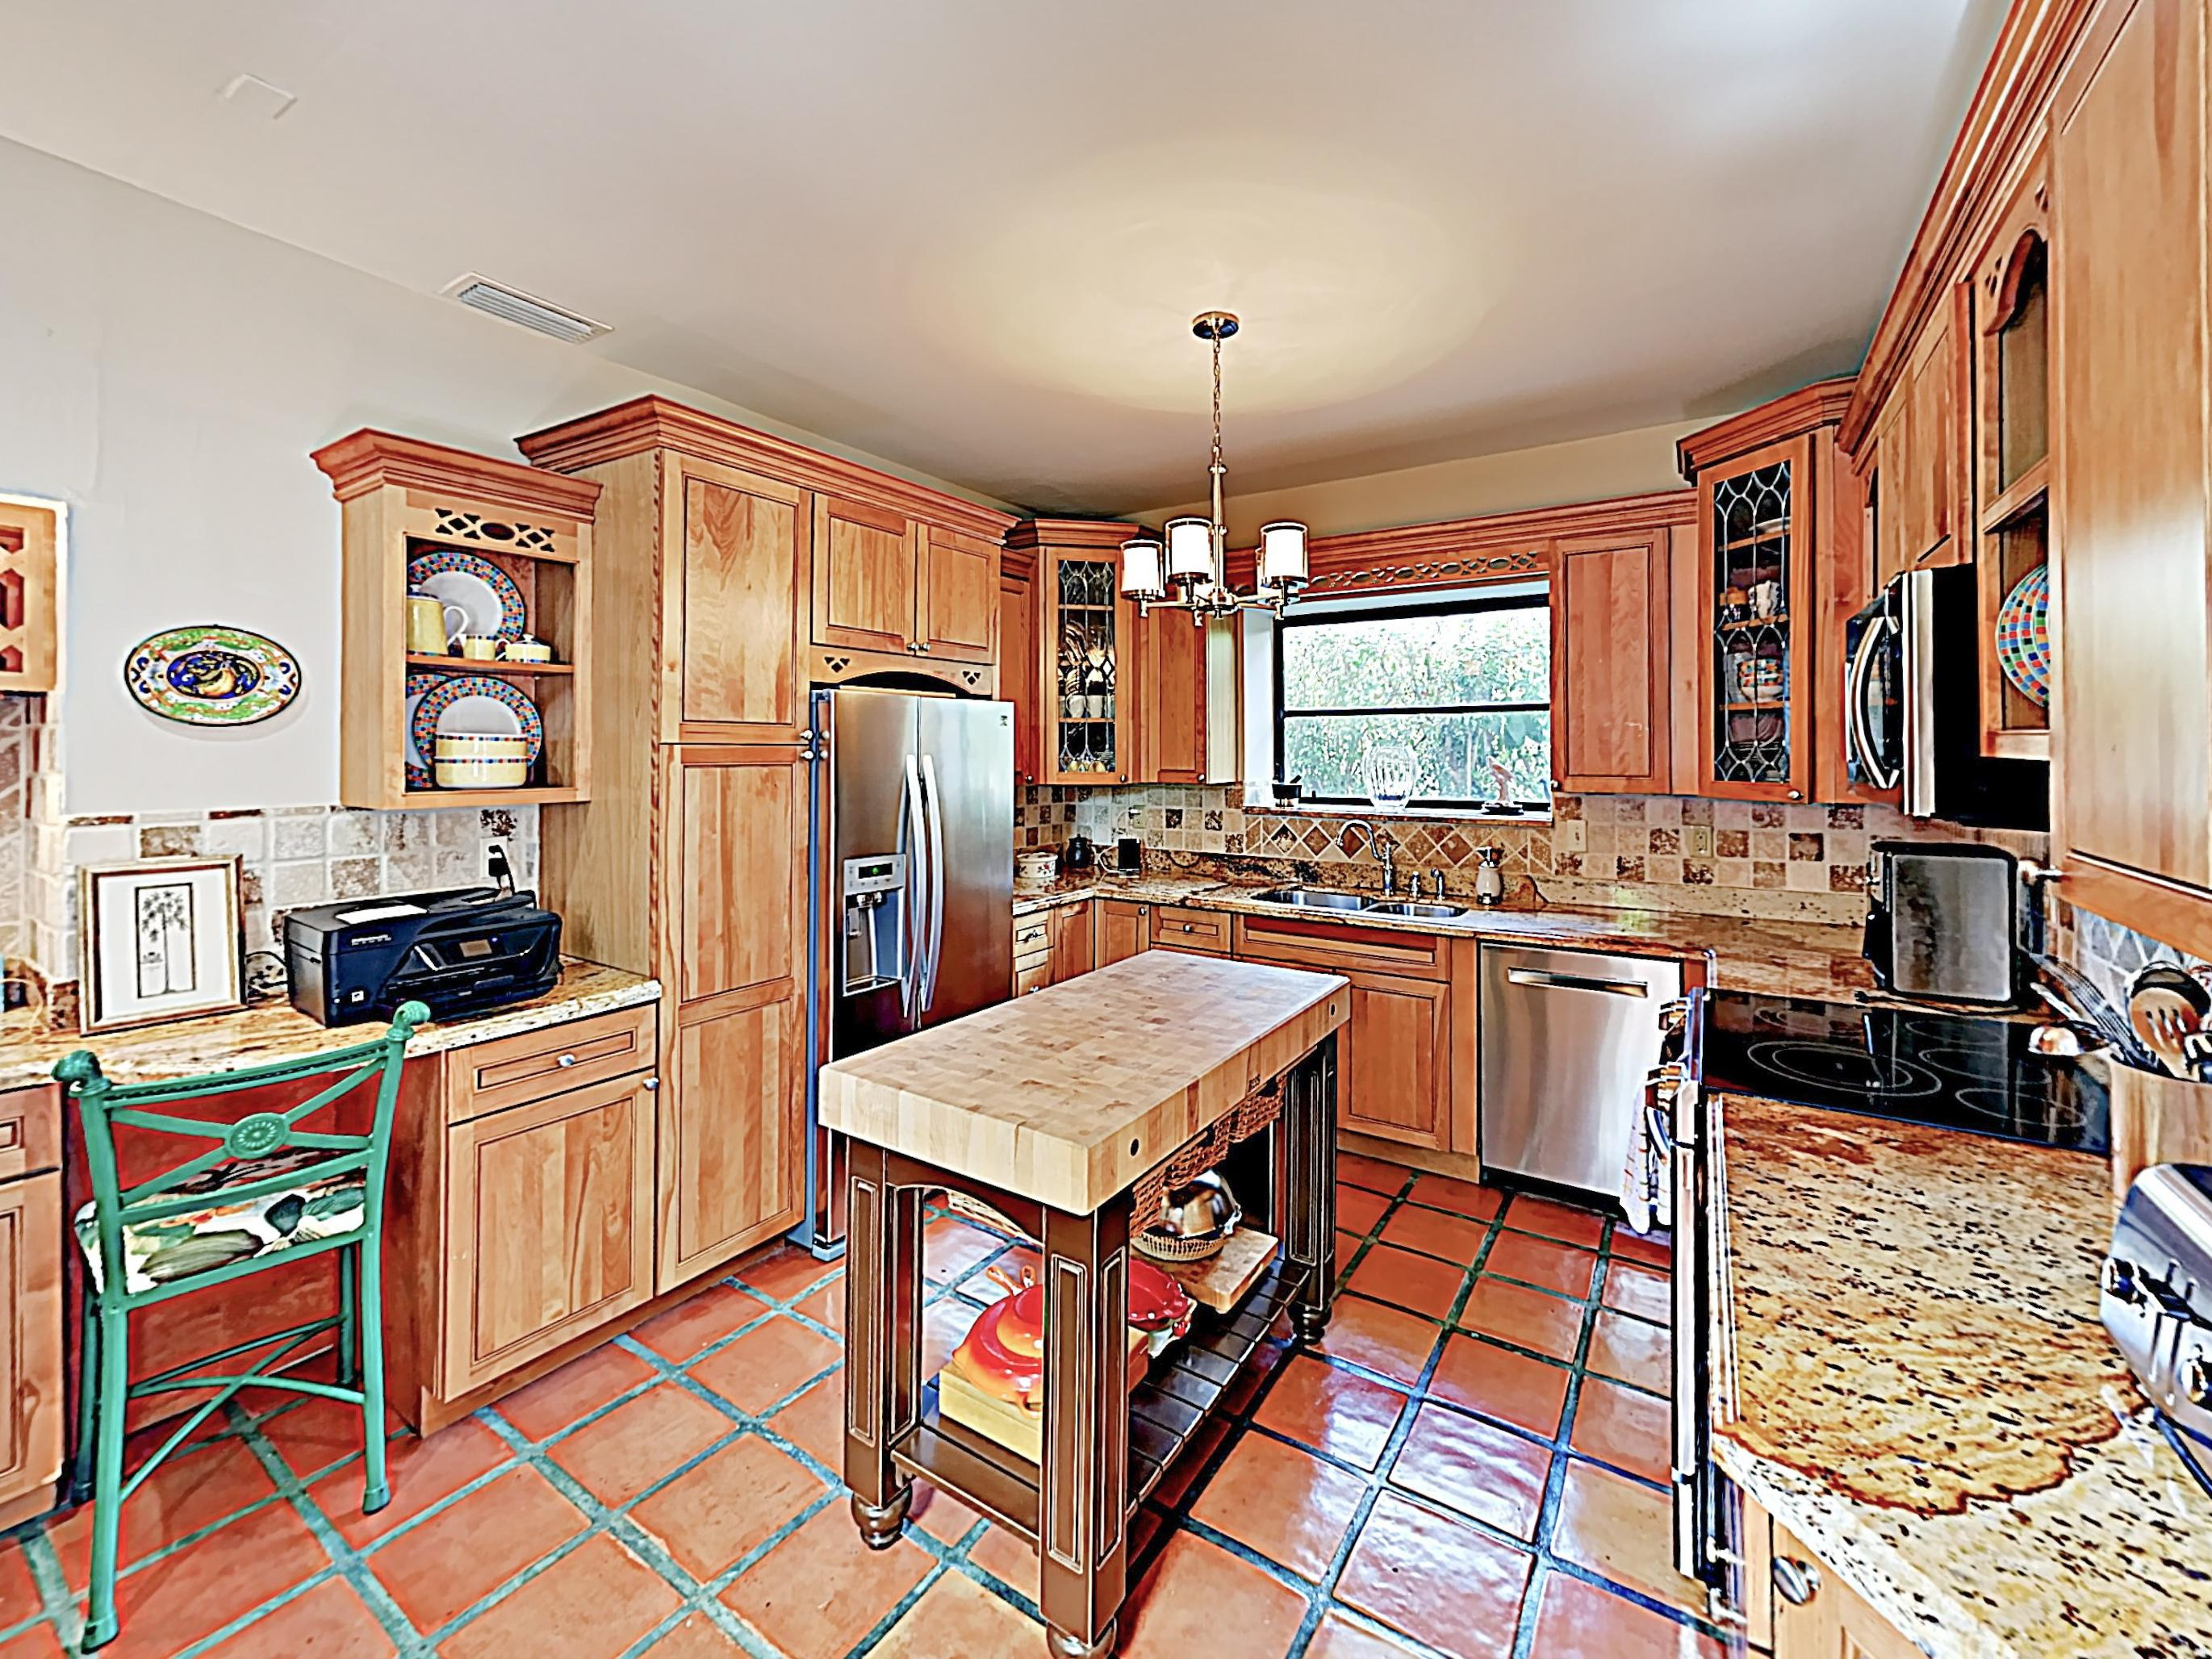 The freshly renovated kitchen boasts gleaming granite countertops and a full suite of stainless steel appliances.